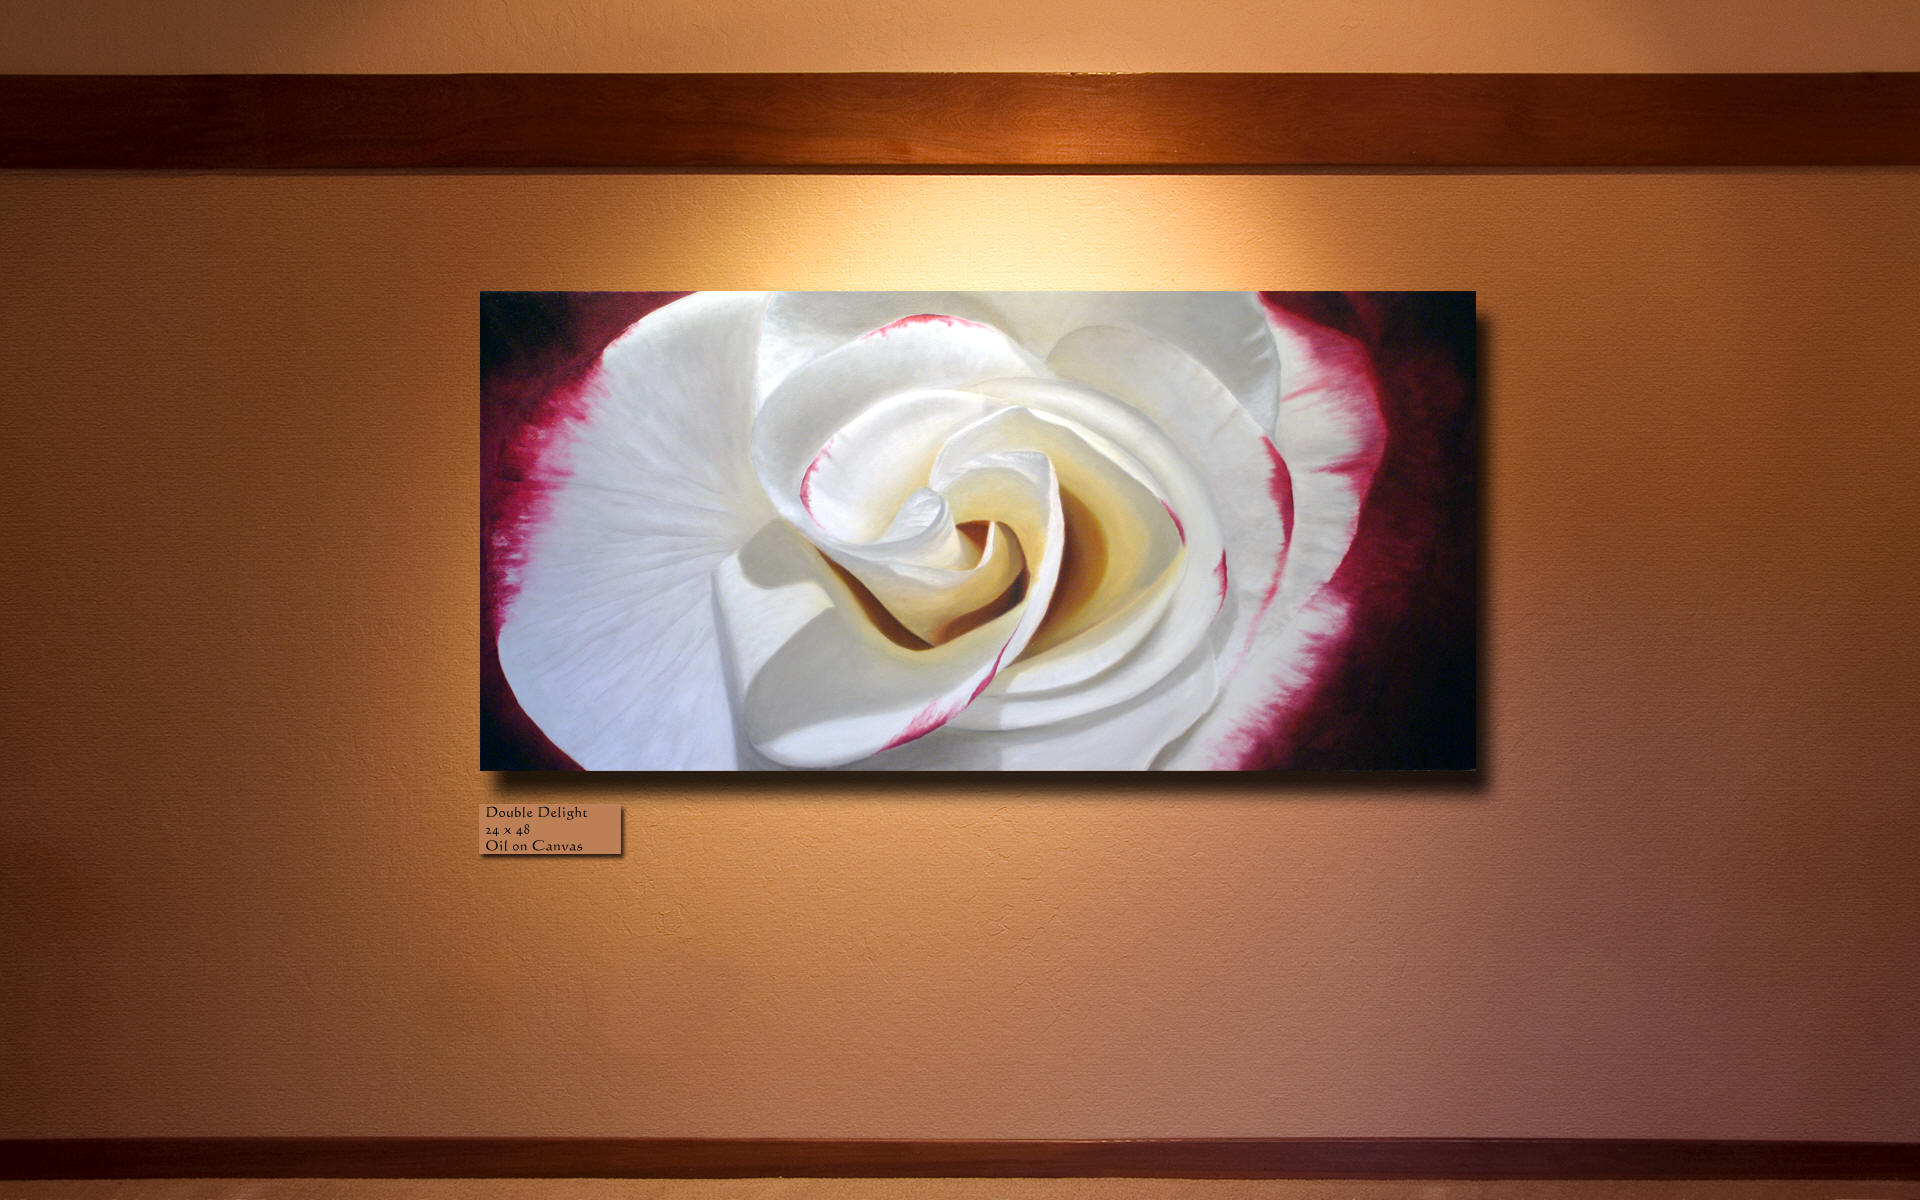 A portrait of Double Delight - Rose paintings by Steve Luce